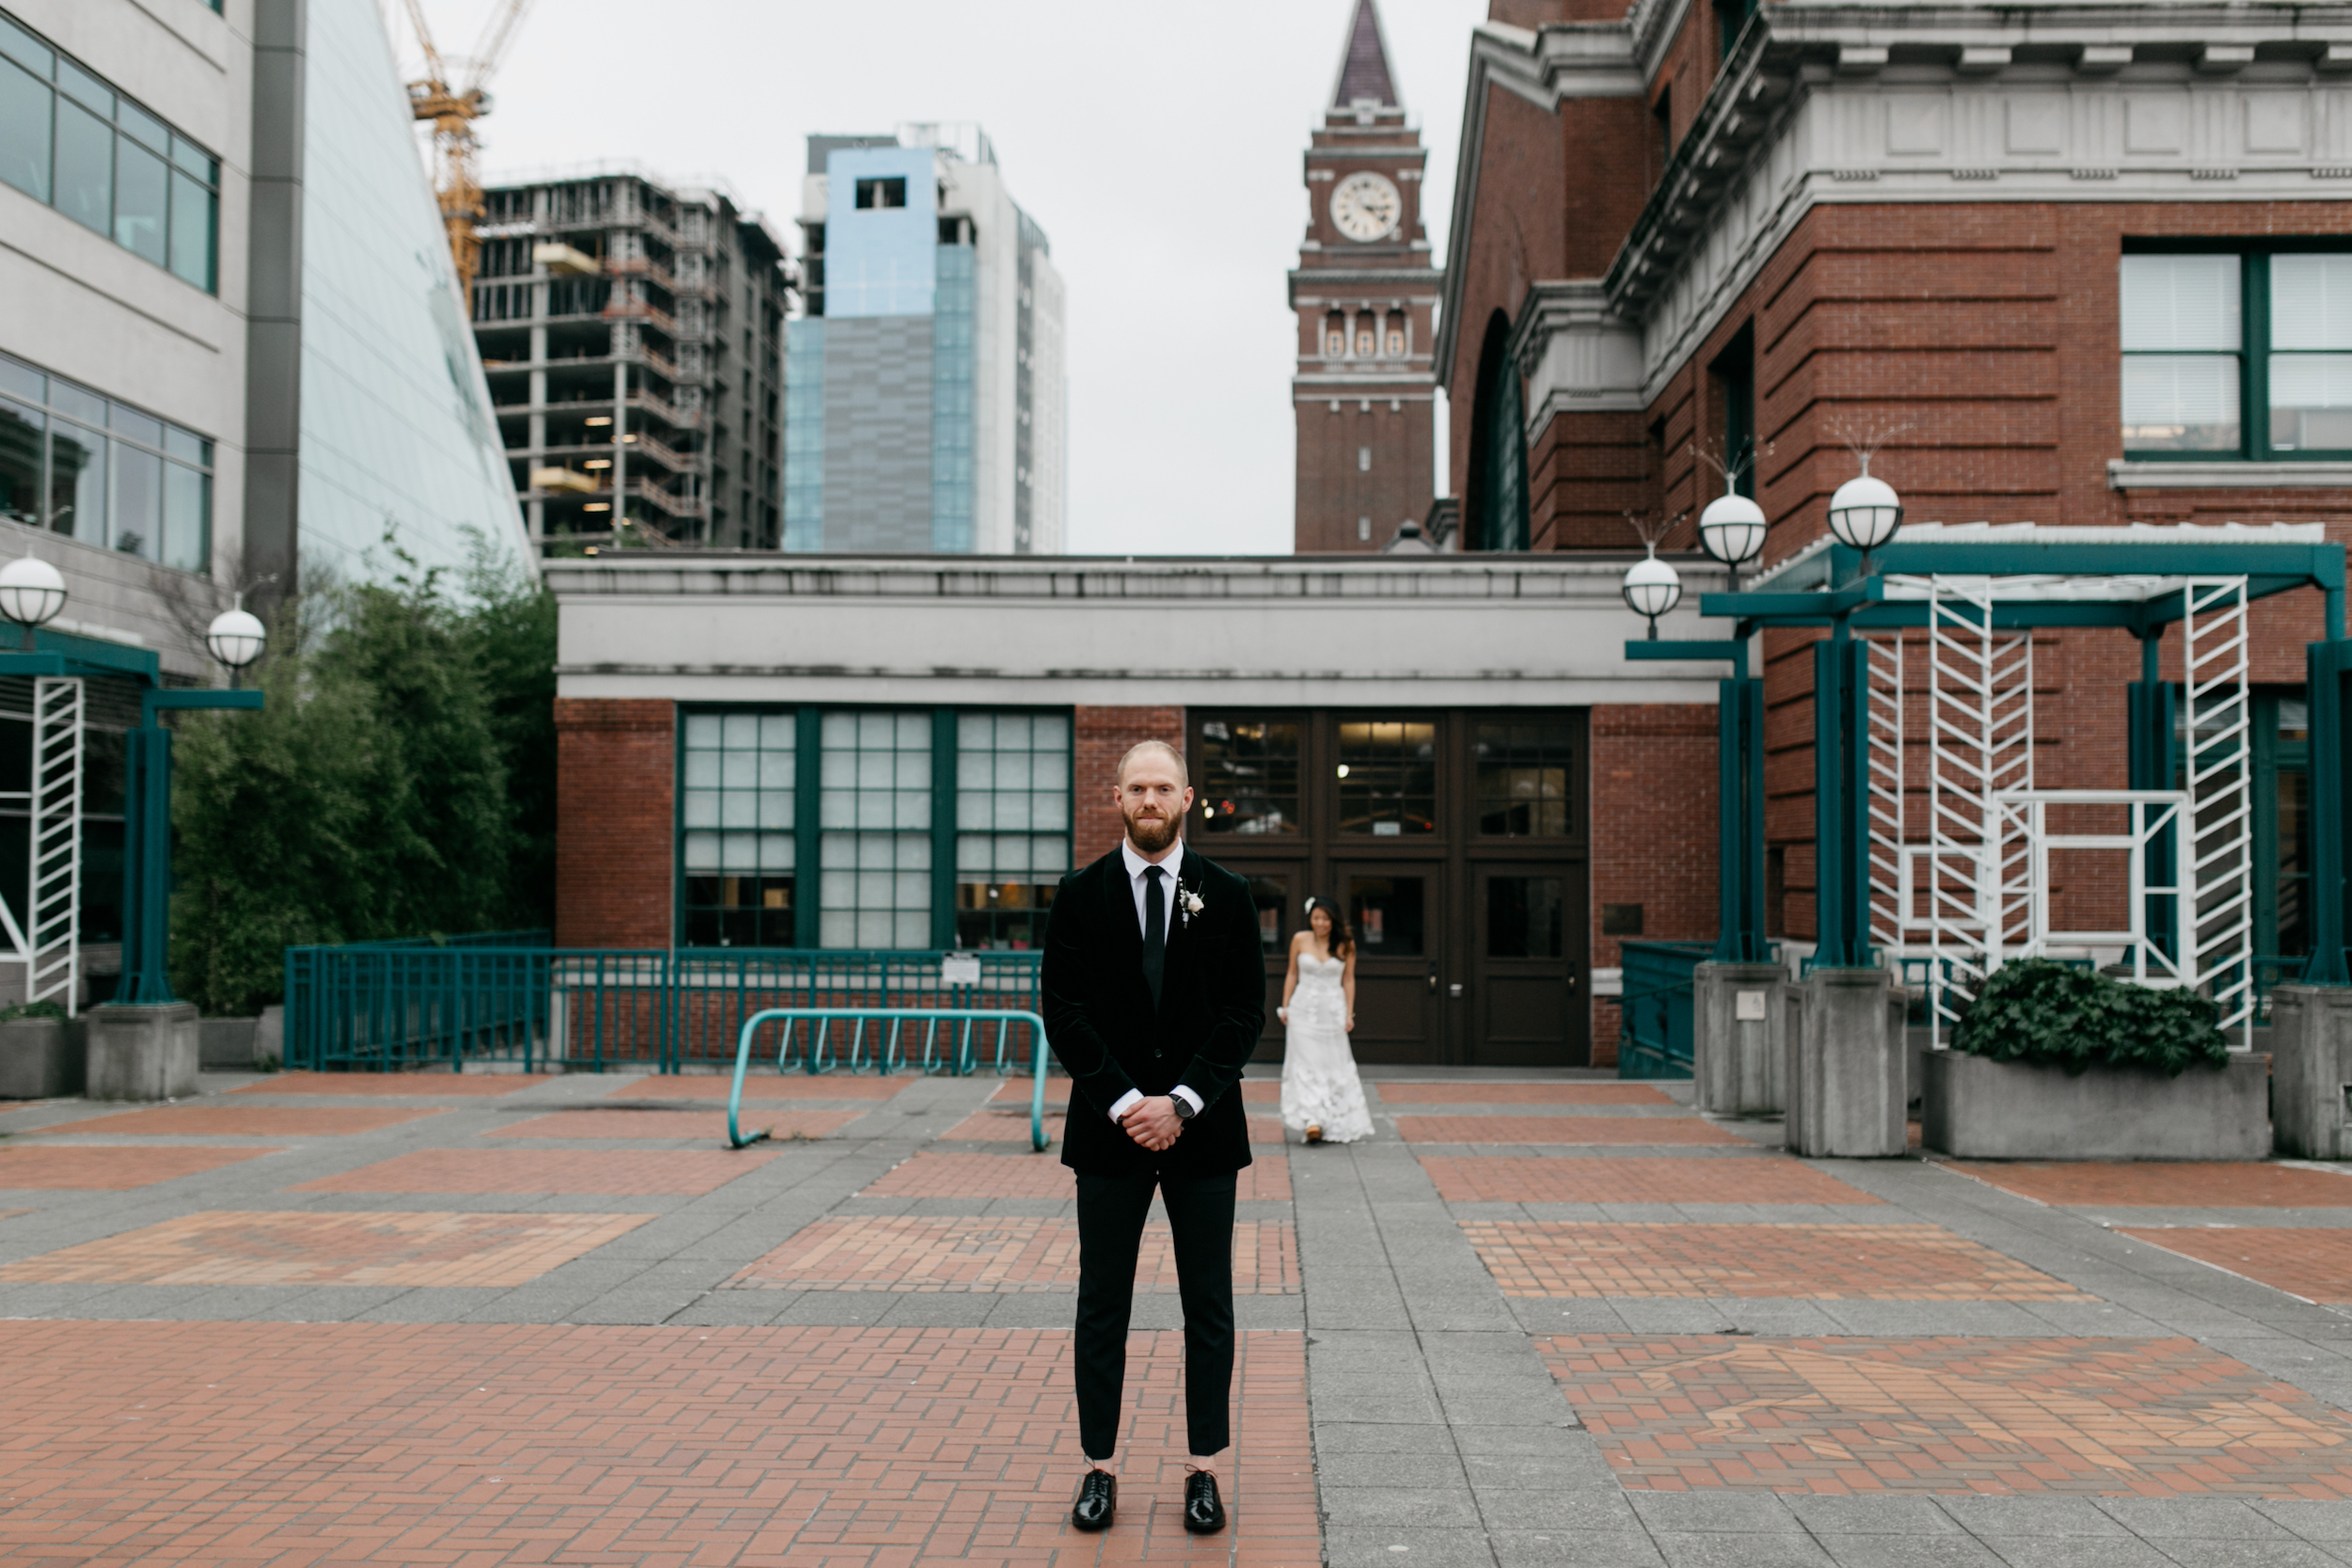 seattle - wedding - photographer118.jpg